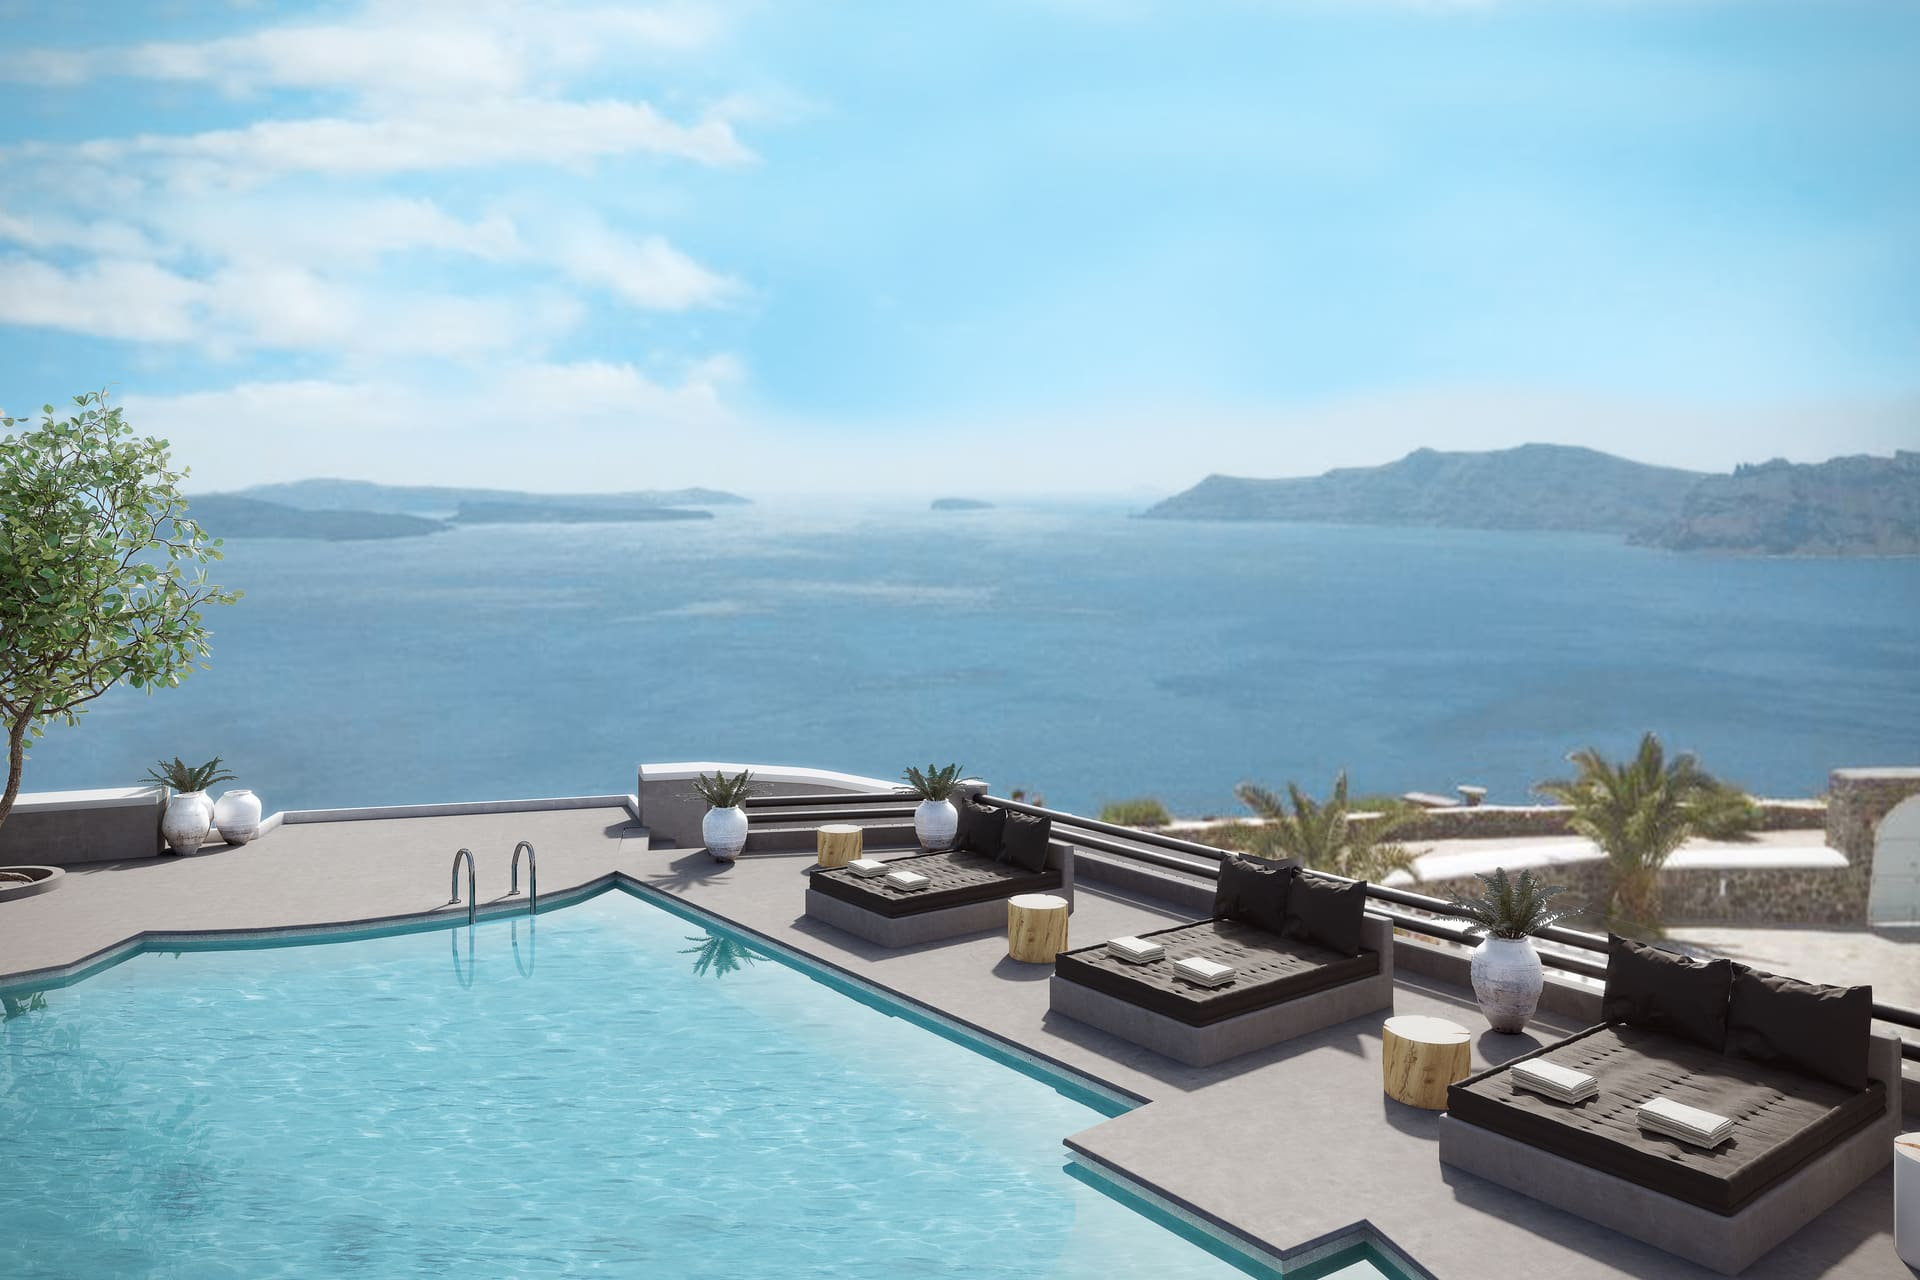 Mr And Mrs White Santorini First Look Offer Champagne All Inclusive – Up To 35% Off & Flexible Policy!